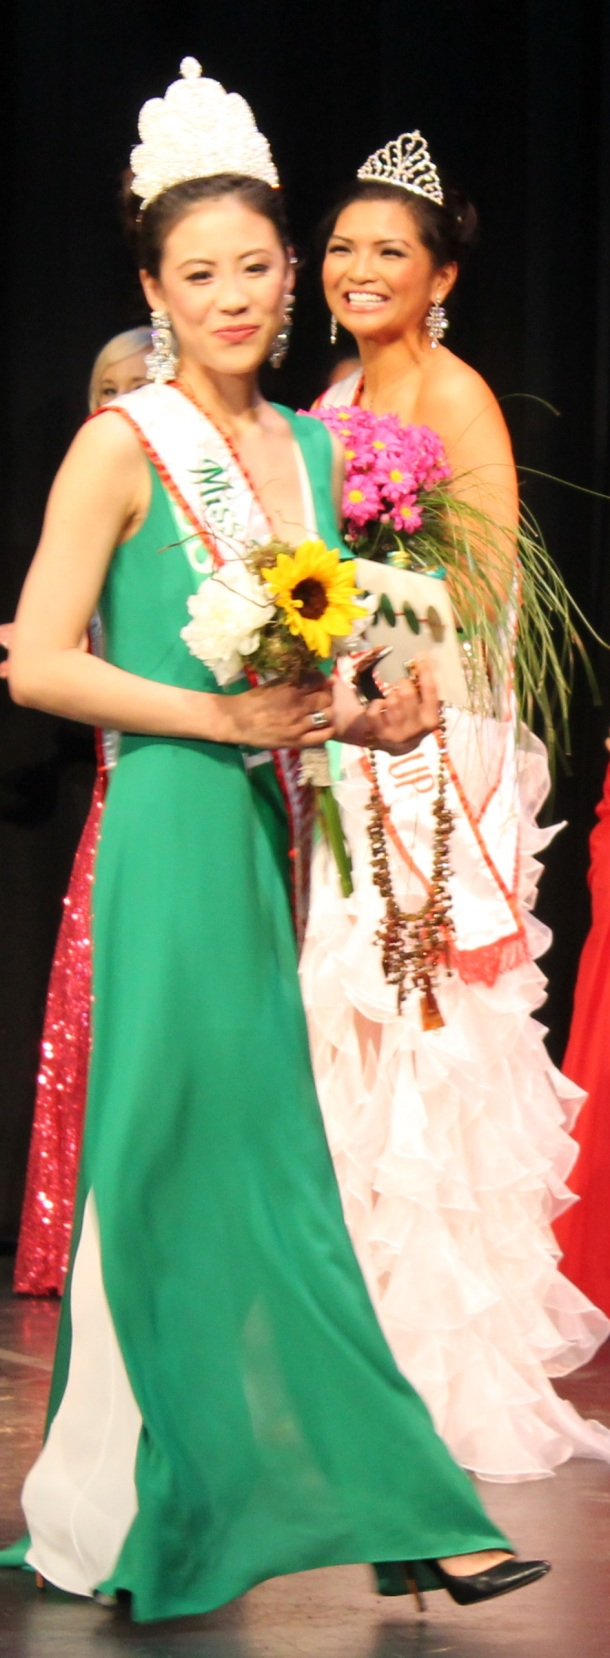 Kiki Szu-Yu Chen takes her first walk as newly-crowned Miss Earth Edmonton 2014, Saturday night, May 17, at the Royal Alberta Museum as first runner-up Jean Nicole de Jesus, who won the Miss Air Edmonton 2014 title, beams with a big smile. The tiaras were designed by pageant director Myrhalyn Dela Rosa.(Photo by Moses Billacura/pinoy edmonton news)